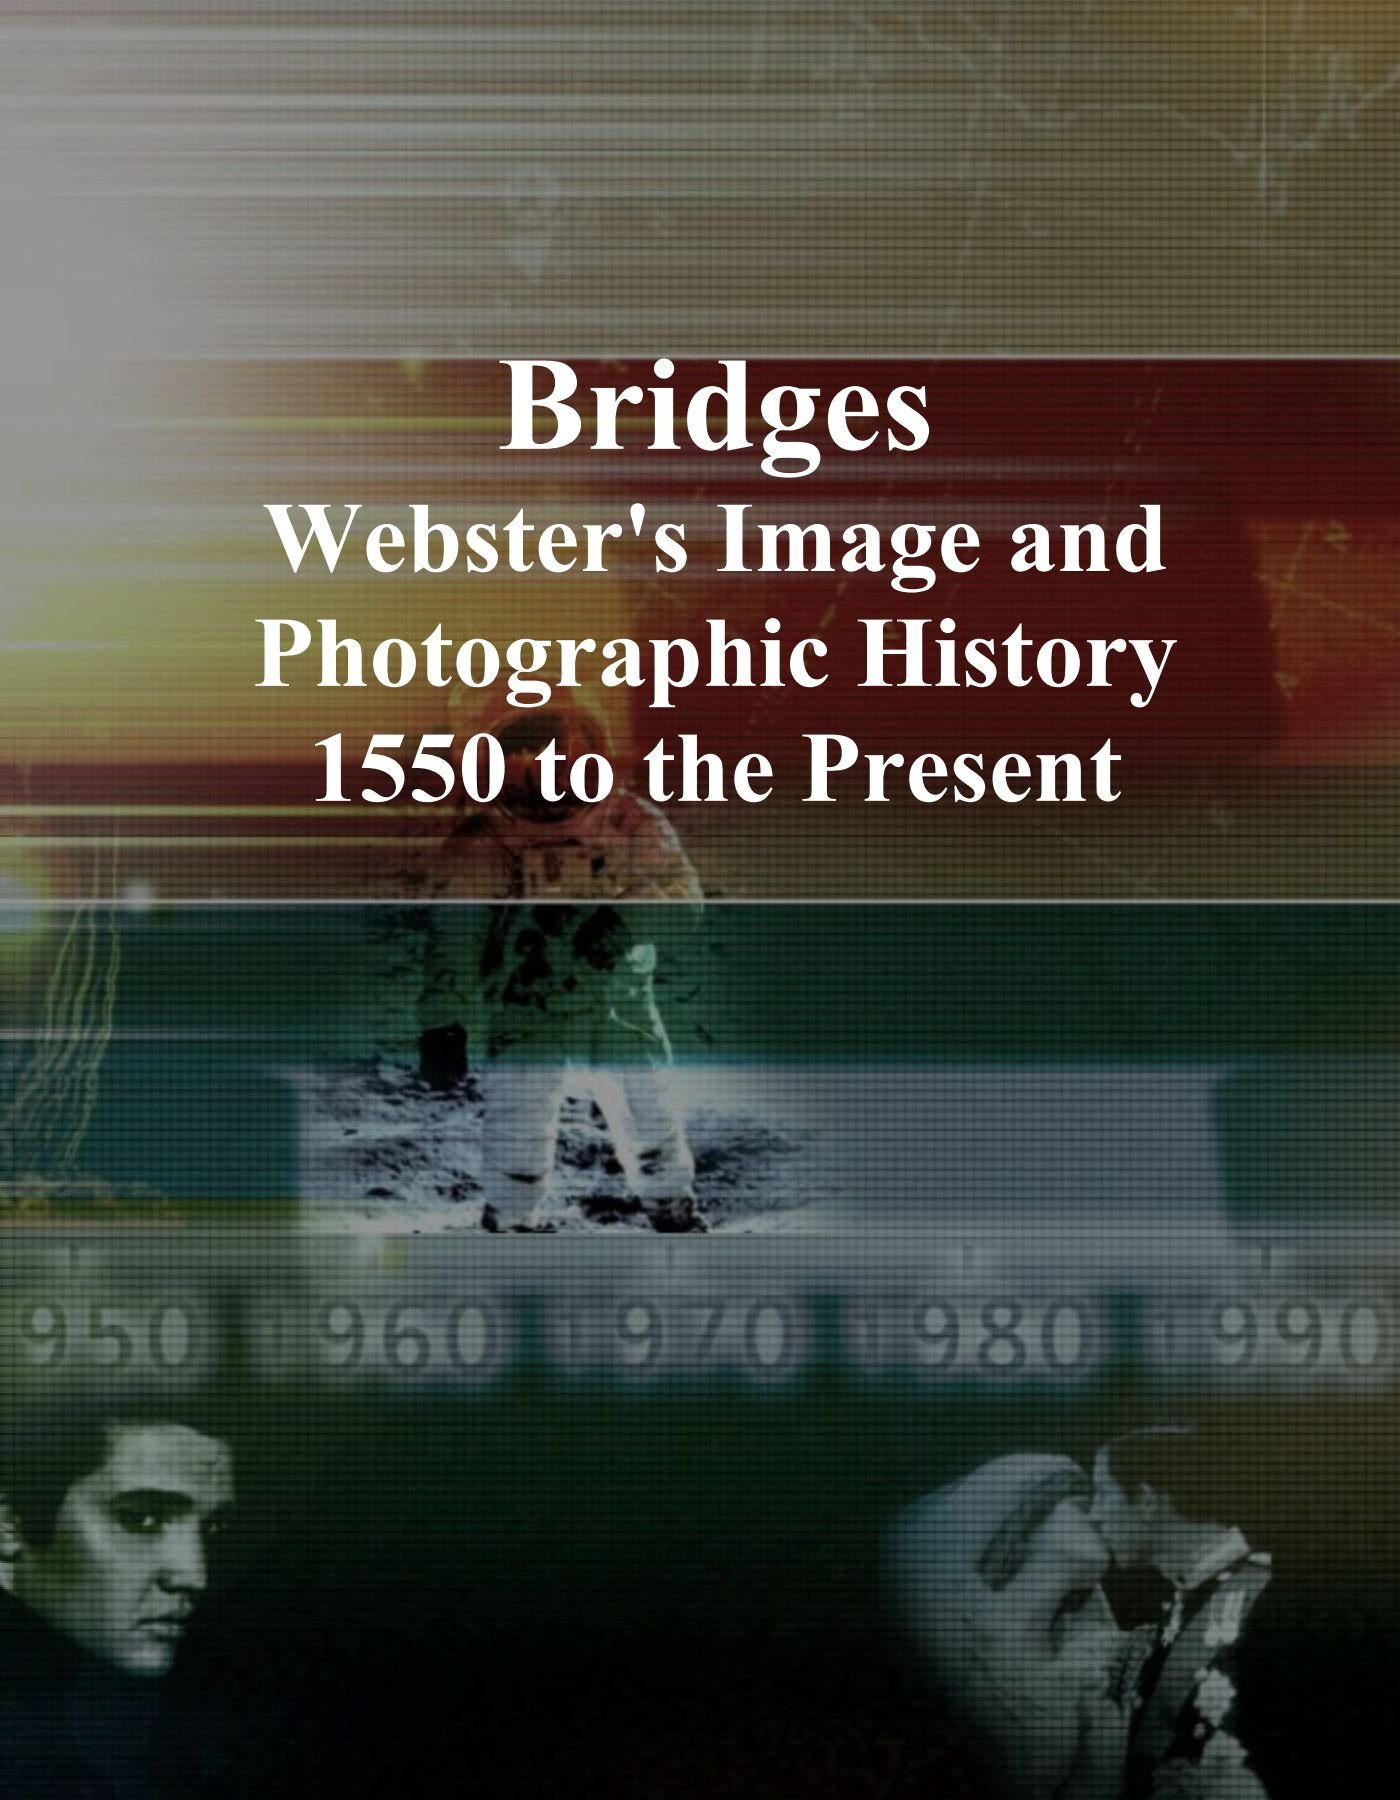 Bridges: Webster's Image and Photographic History, 1550 to the Present